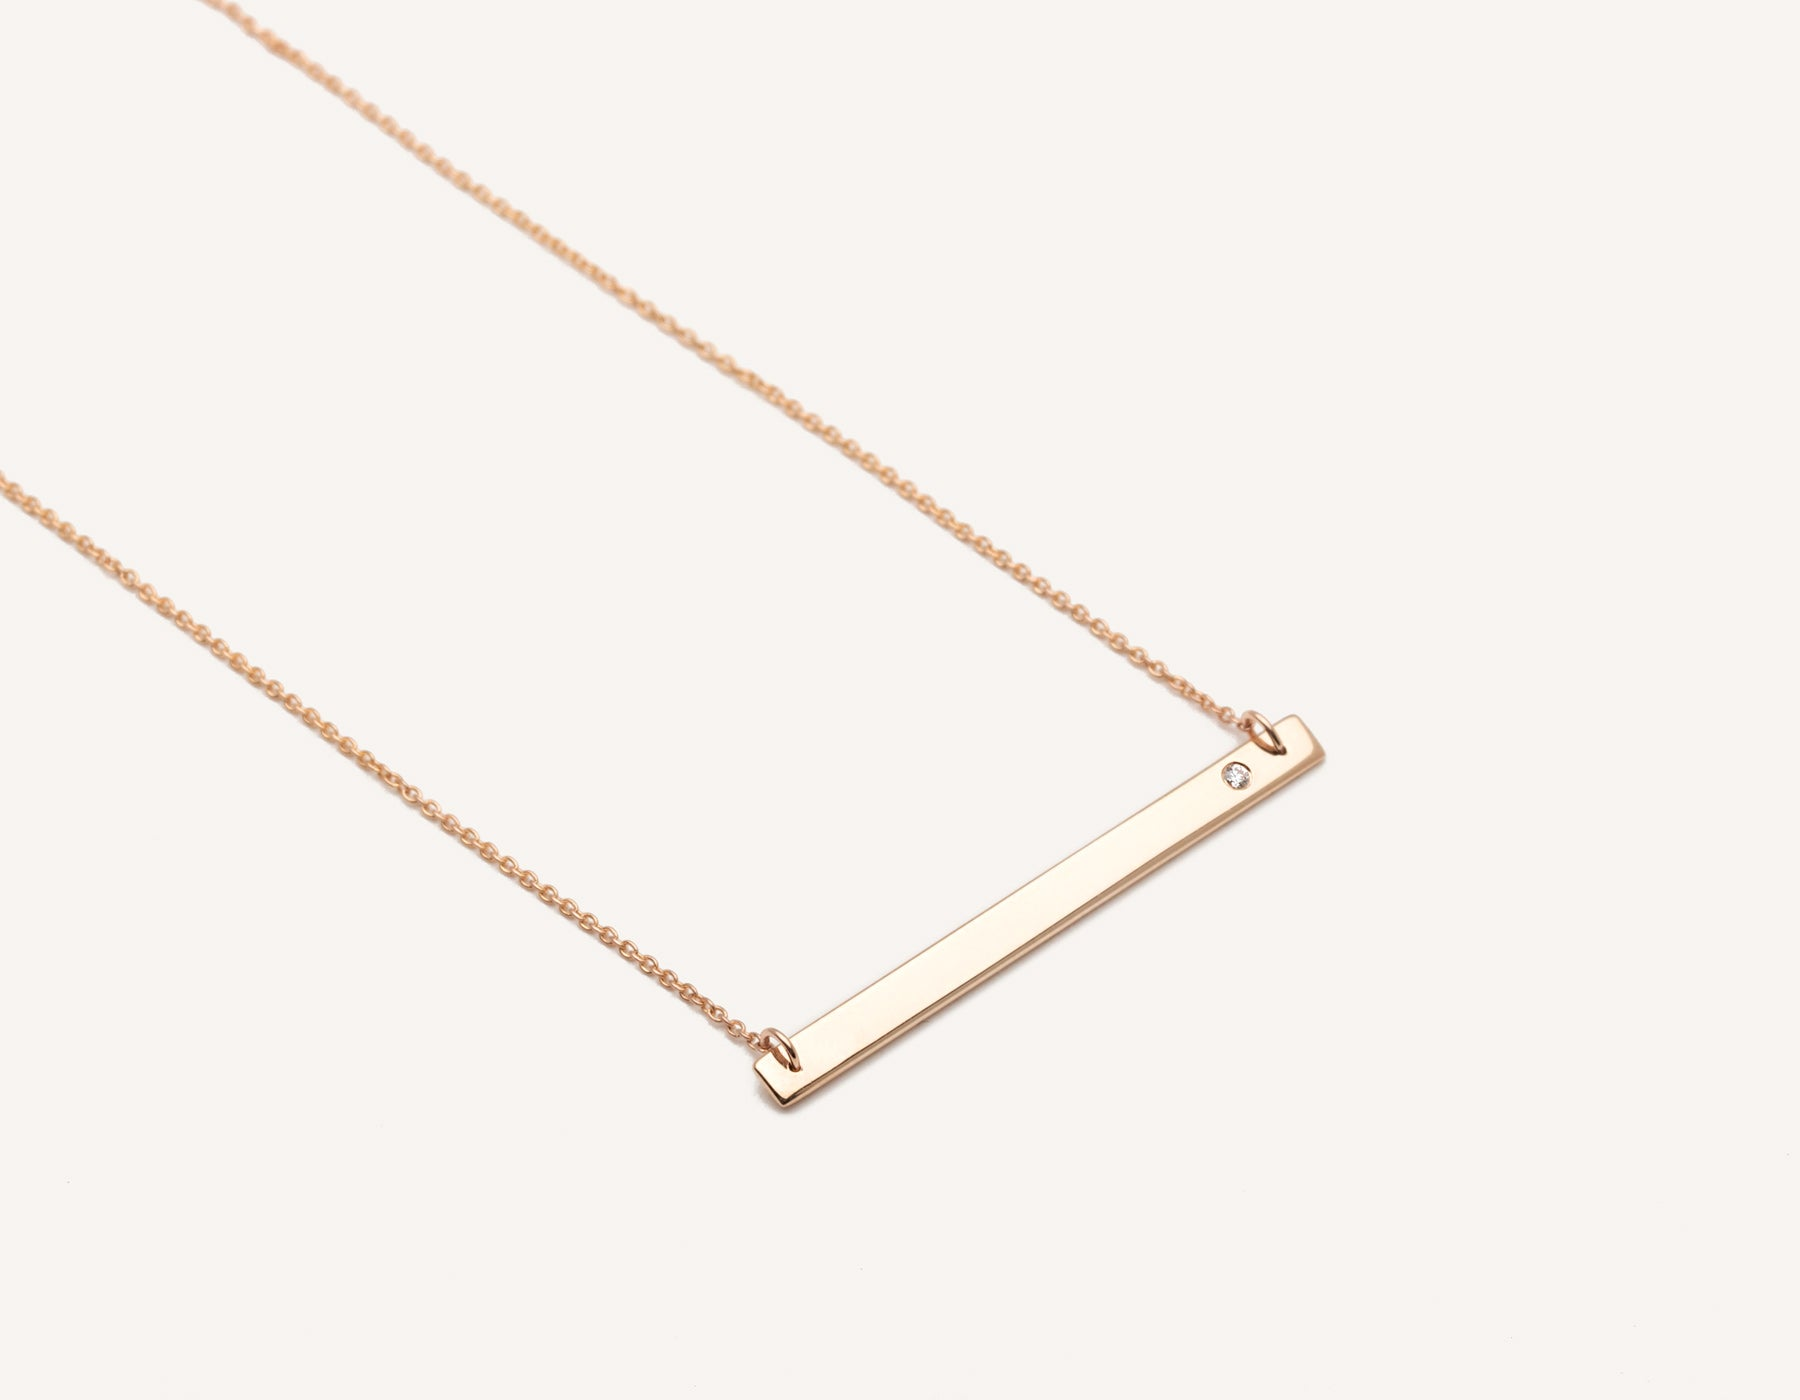 Stylish engravable 14k solid gold Bar Necklace with small round diamond on classic chain by Vrai & Oro minimalist jewelry, 14K Rose Gold